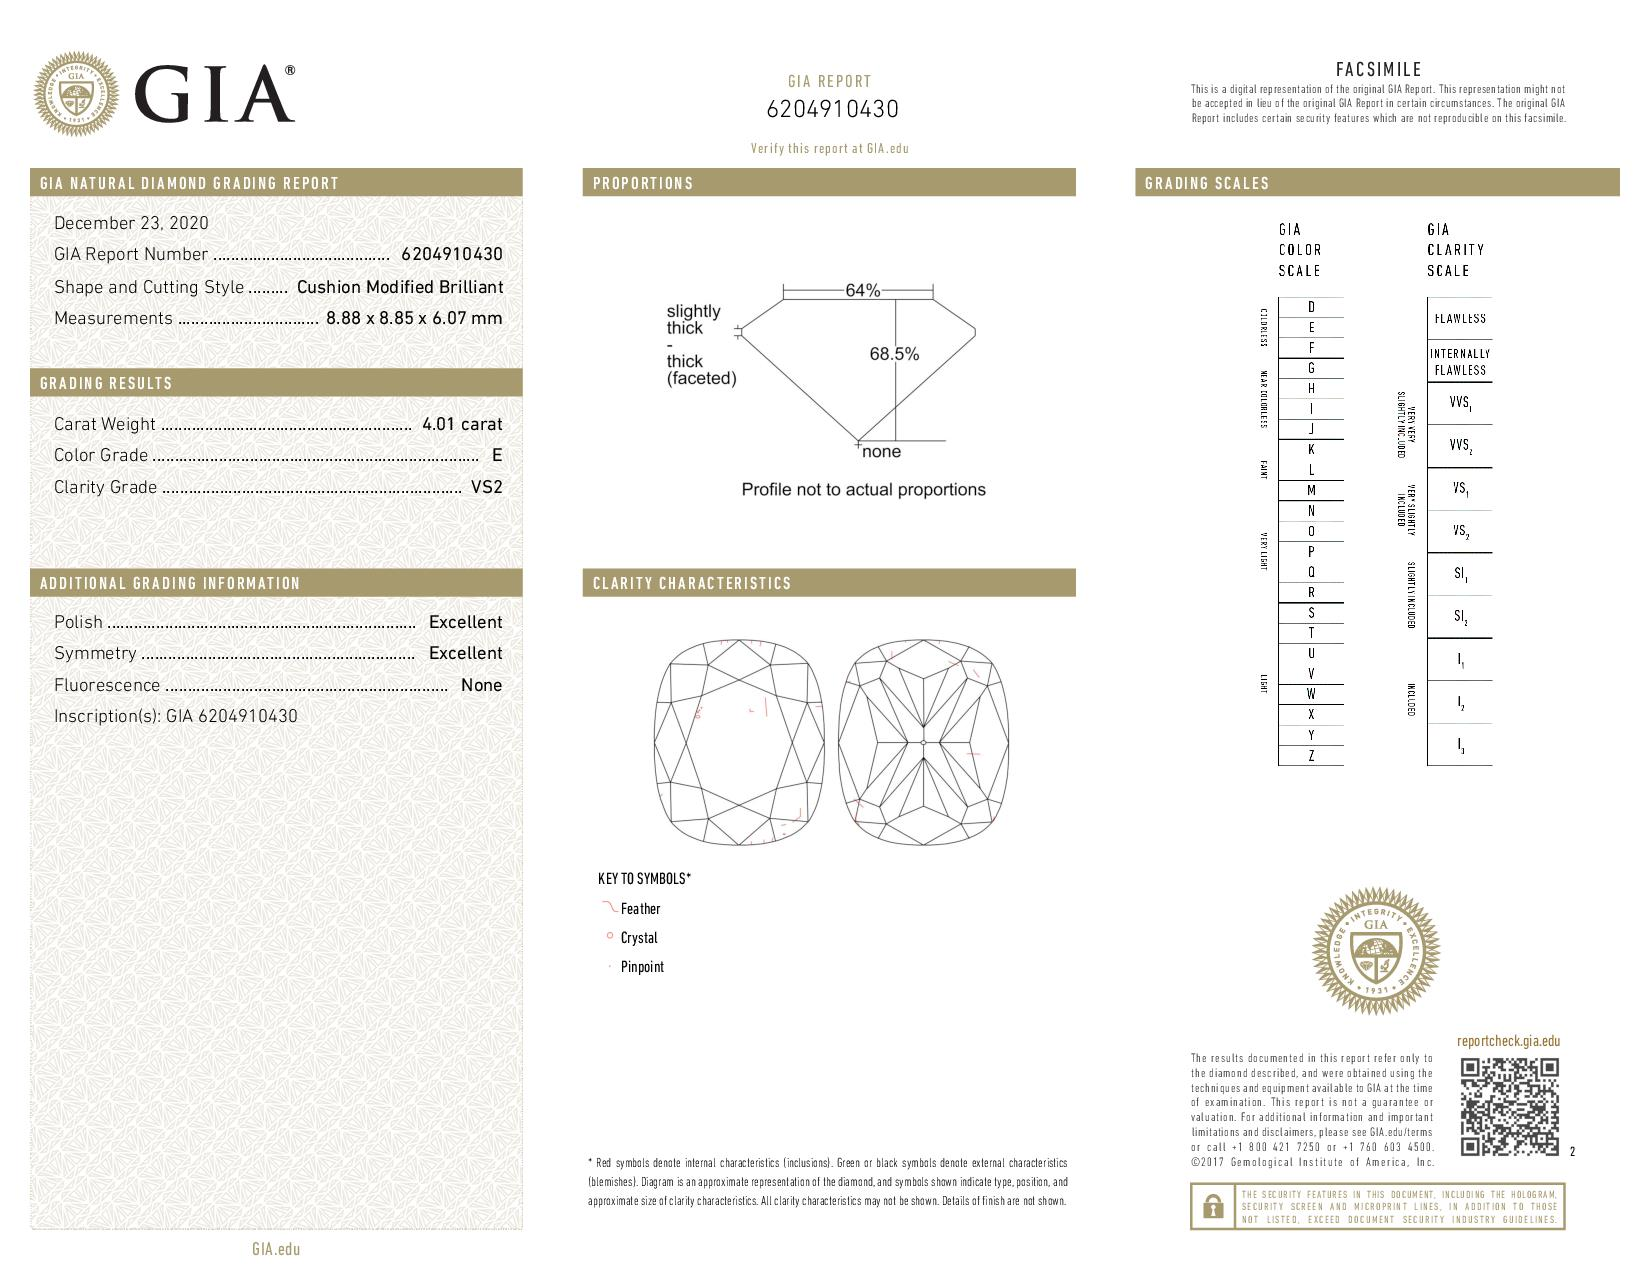 This is a 4.01 carat cushion shape, E color, VS2 clarity natural diamond accompanied by a GIA grading report.